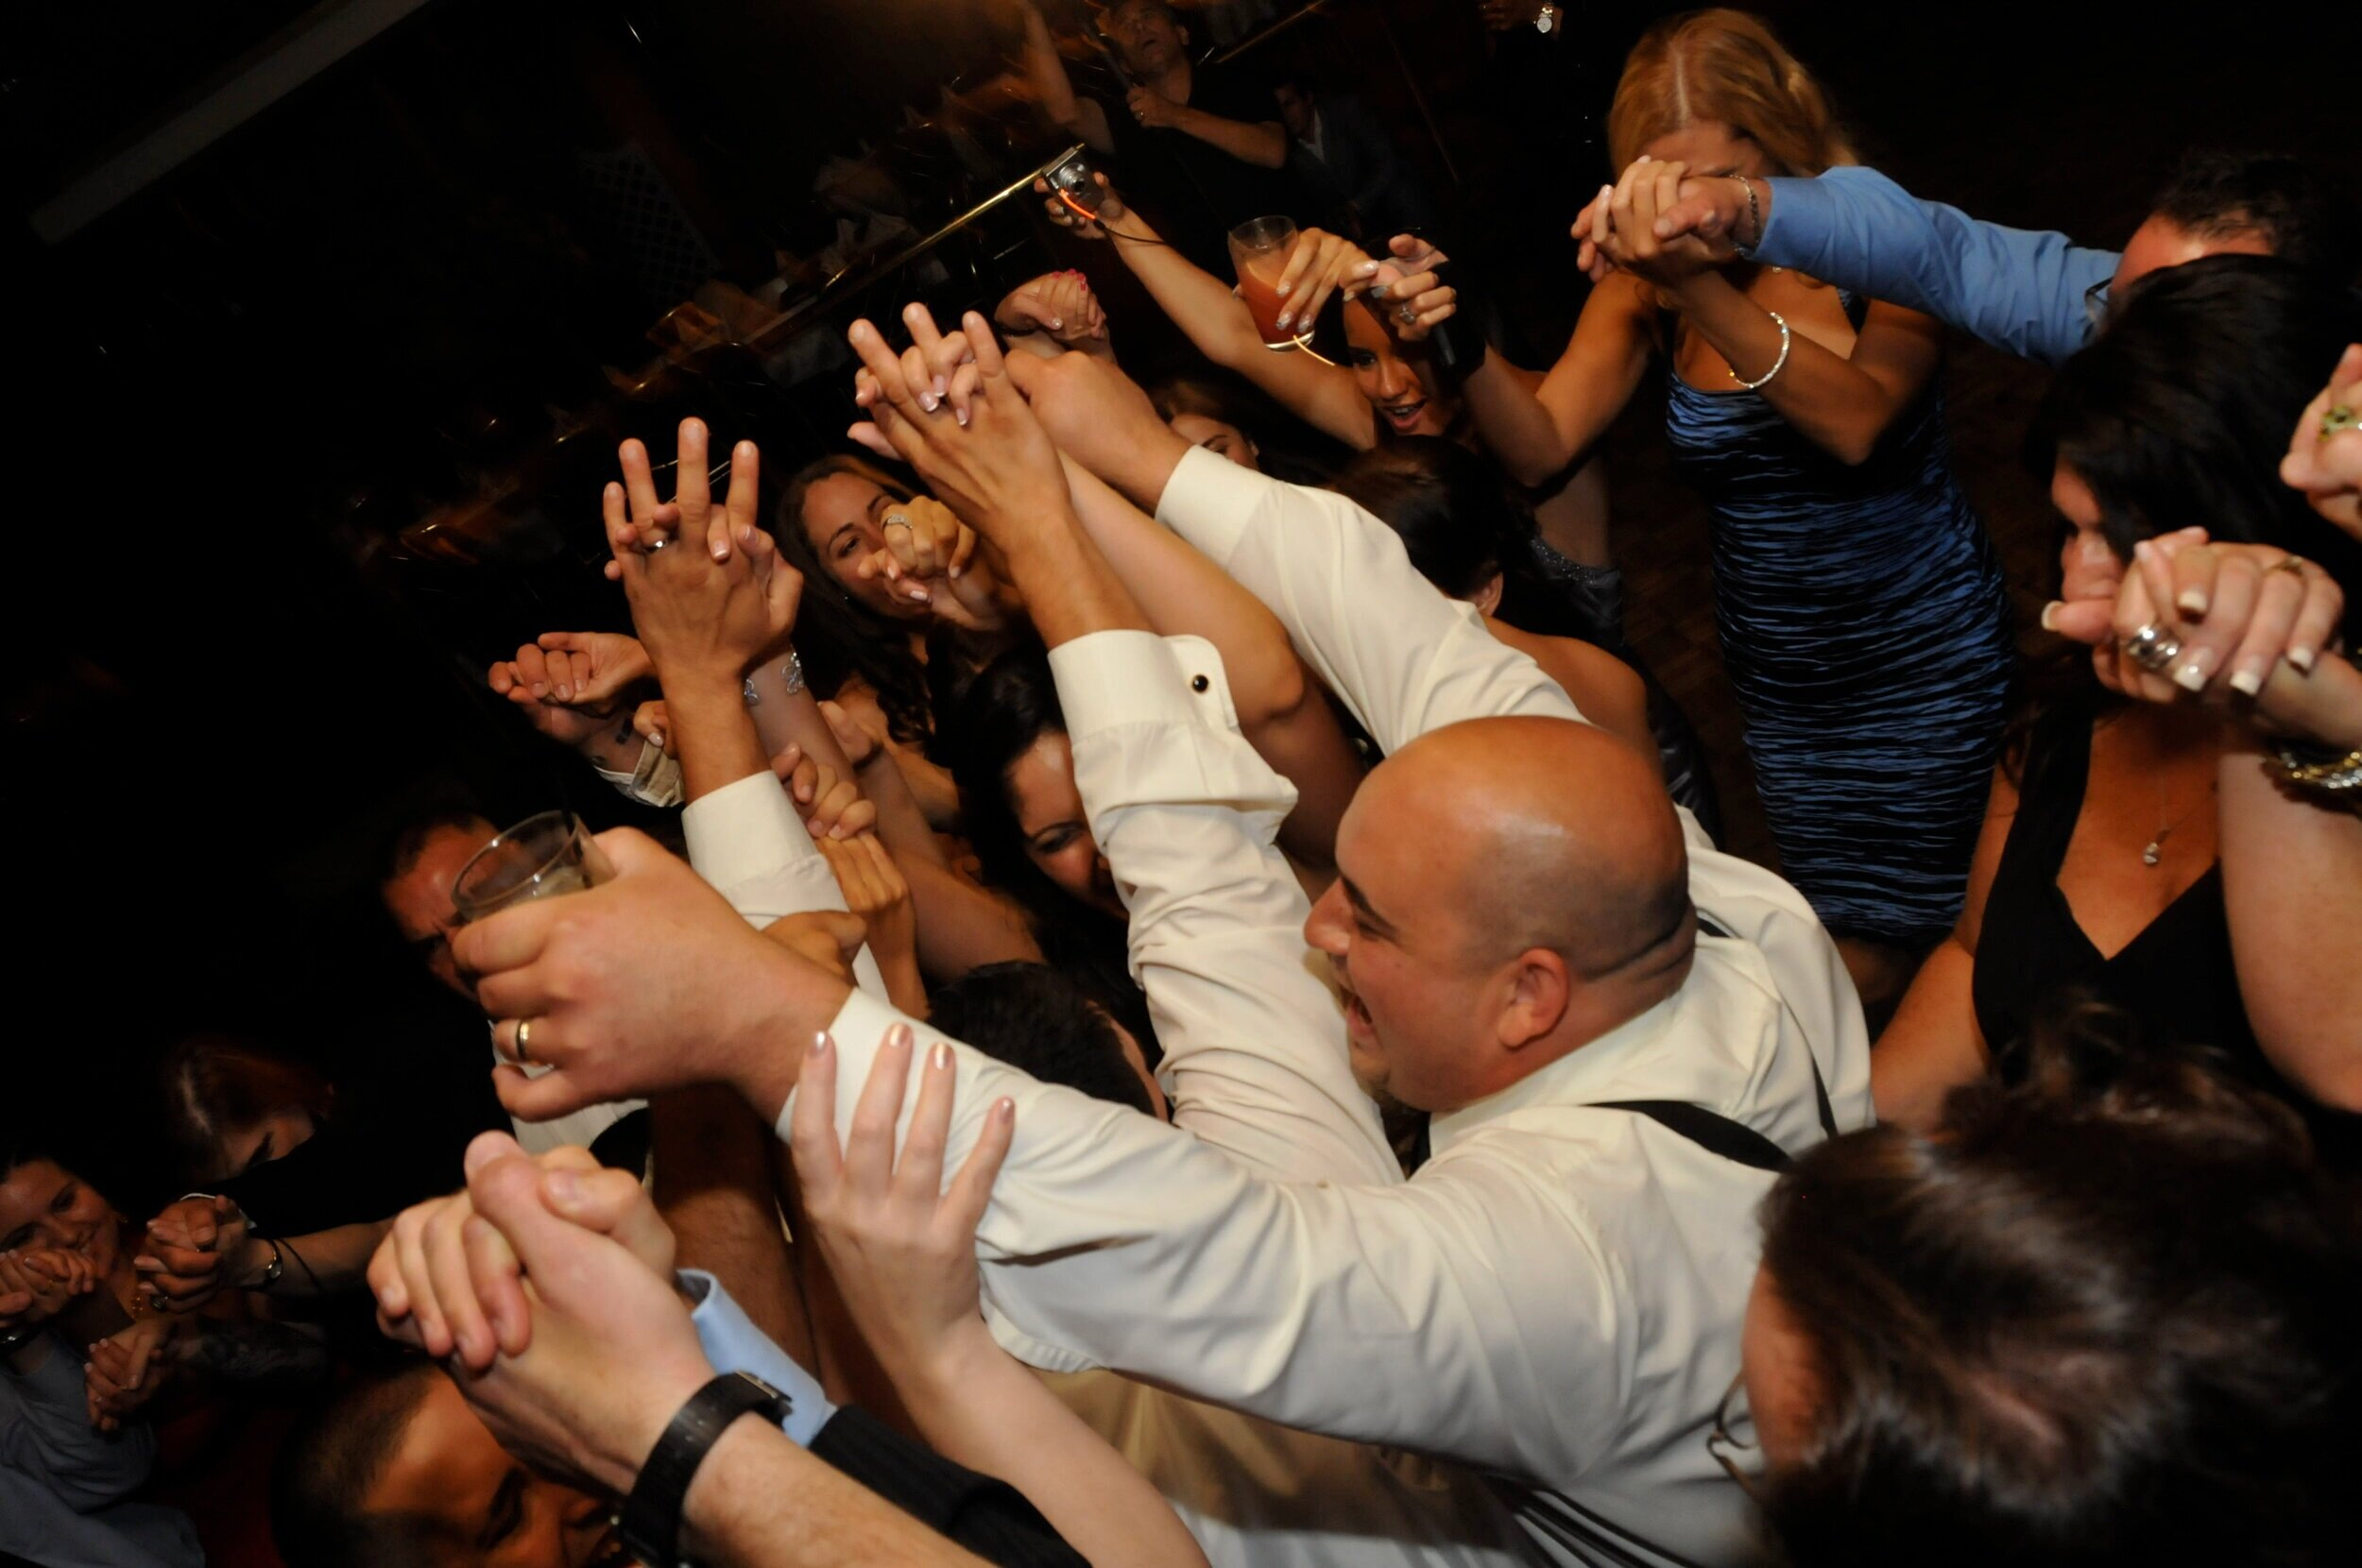 your Wedding - Music & Dancing. First & foremost. But is there more? Yeah, there's more.